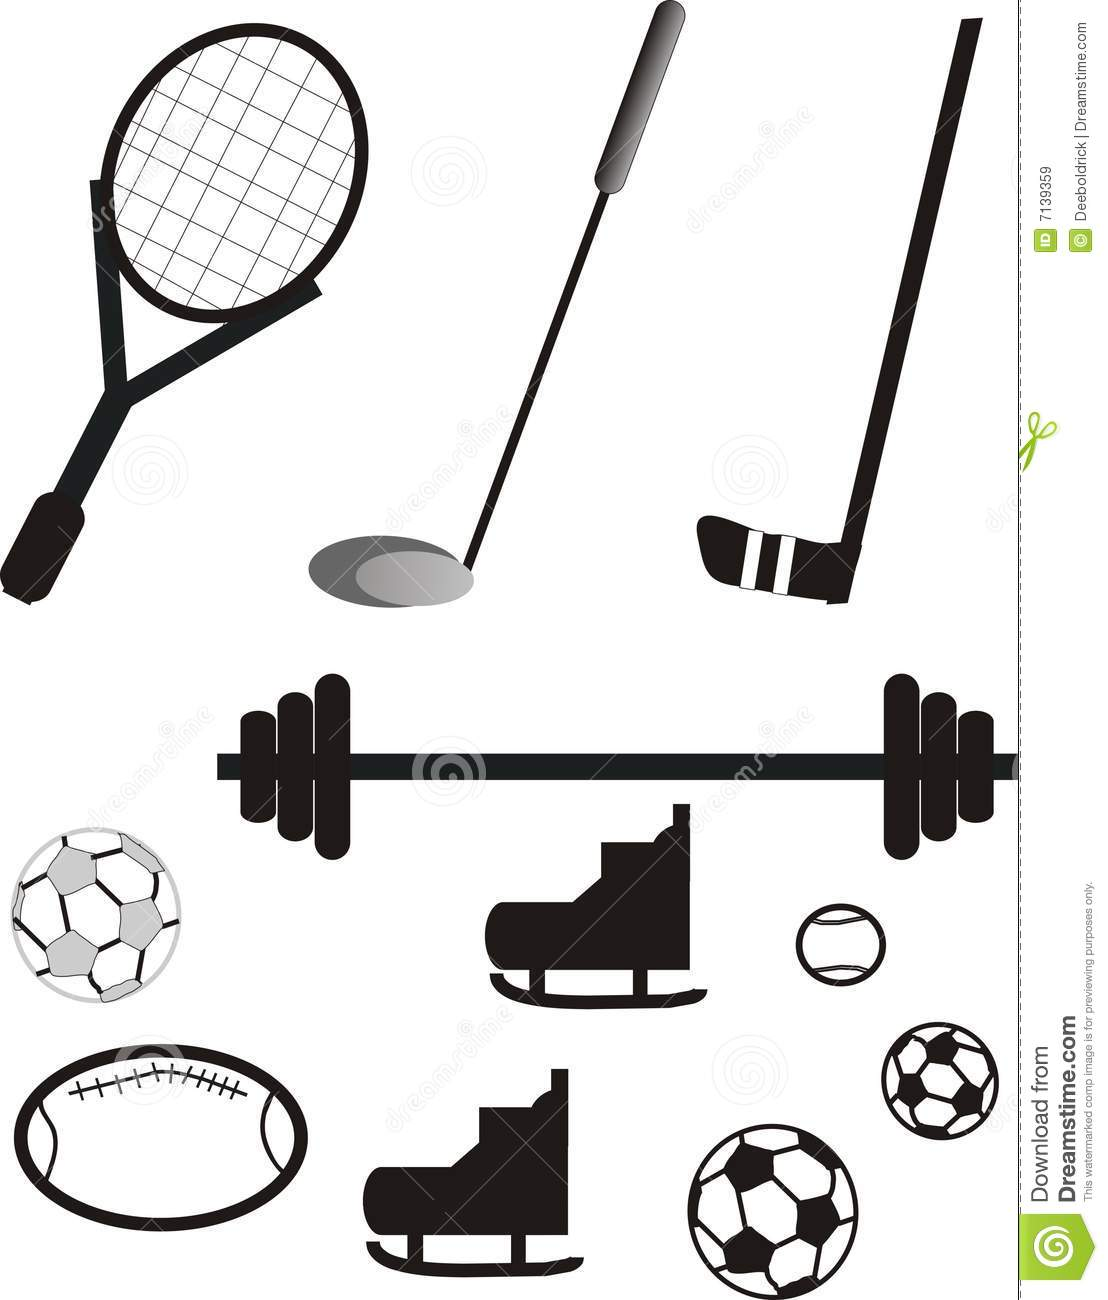 Sports Equipment Pictogram Royalty Free Stock Images